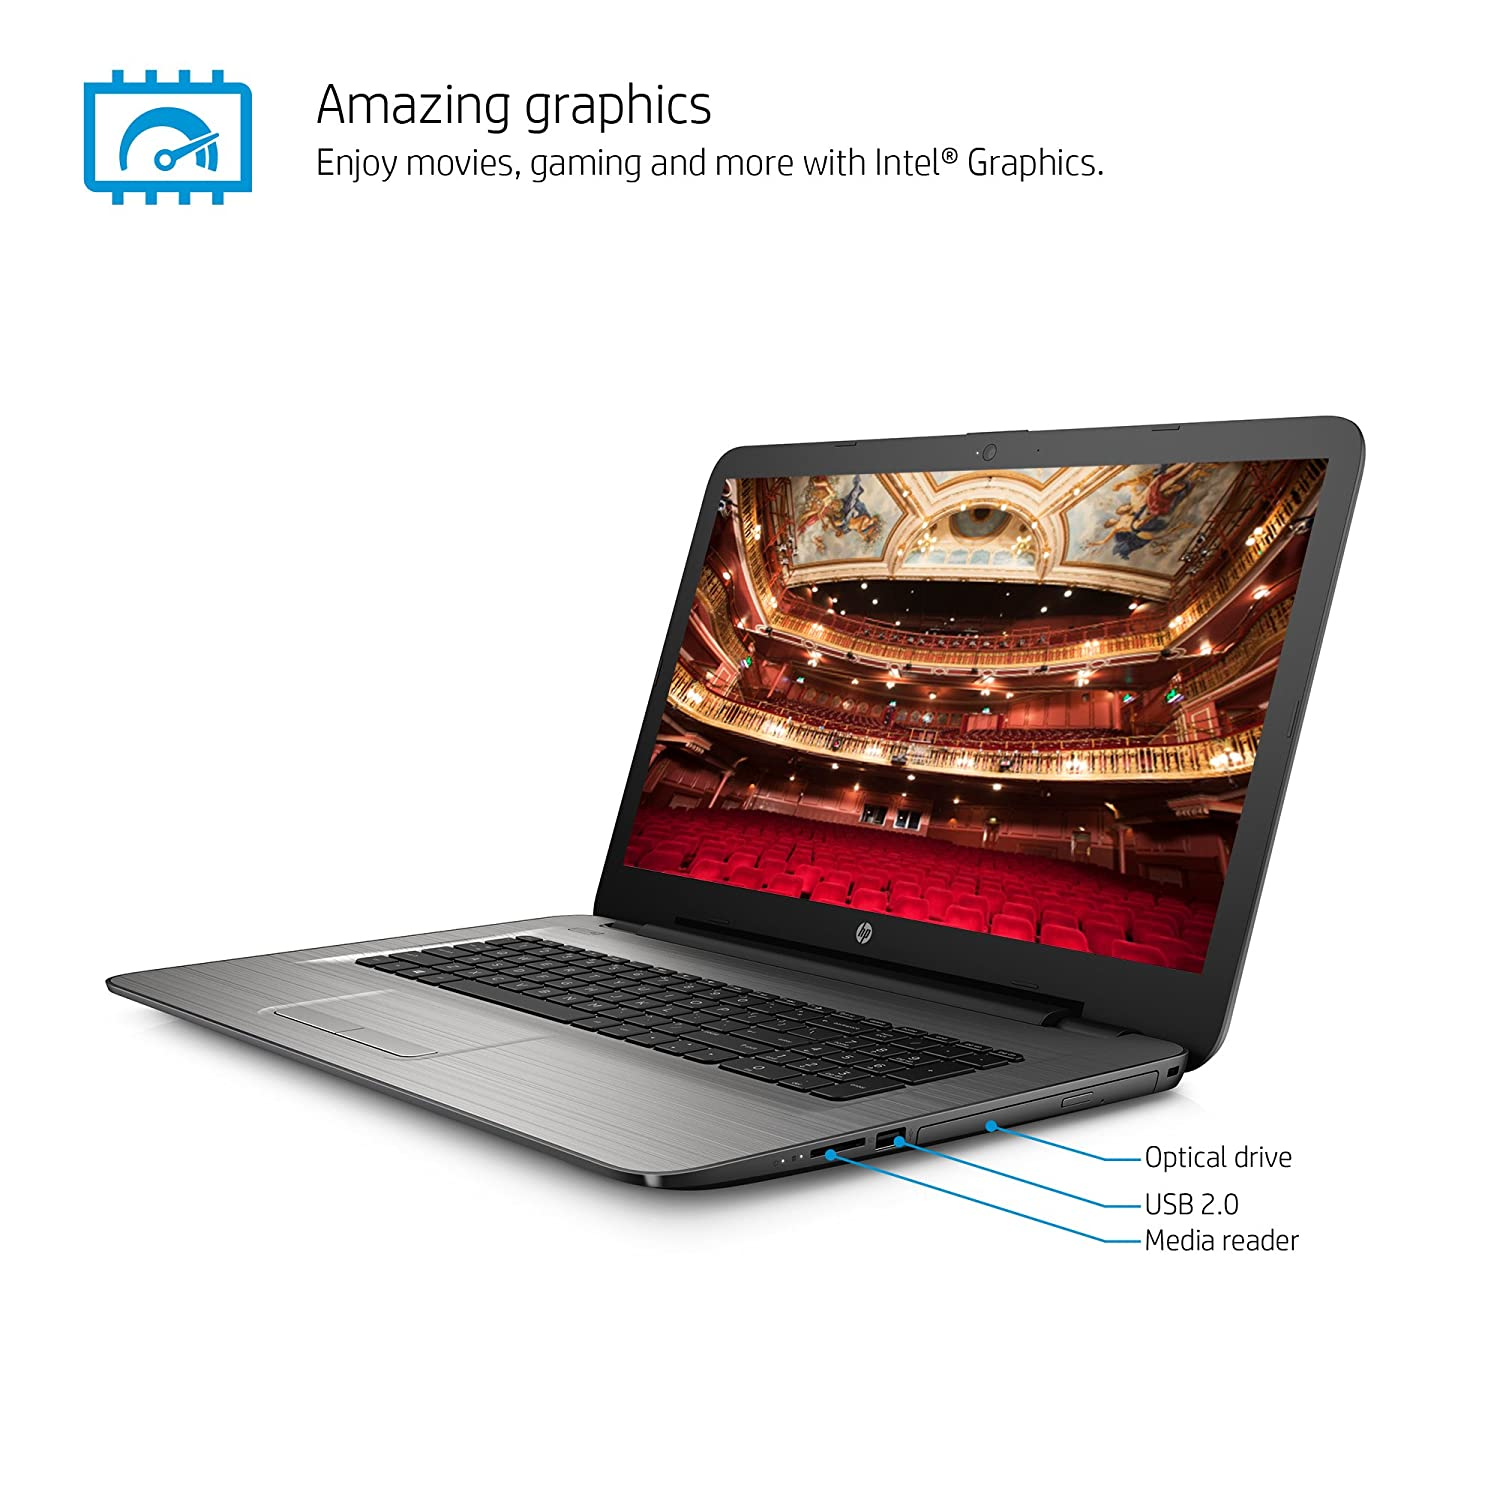 Amazon.com: HP 17-x010nr 17.3-Inch Notebook (Pentium, 4 GB RAM, 1 TB HDD): Computers & Accessories